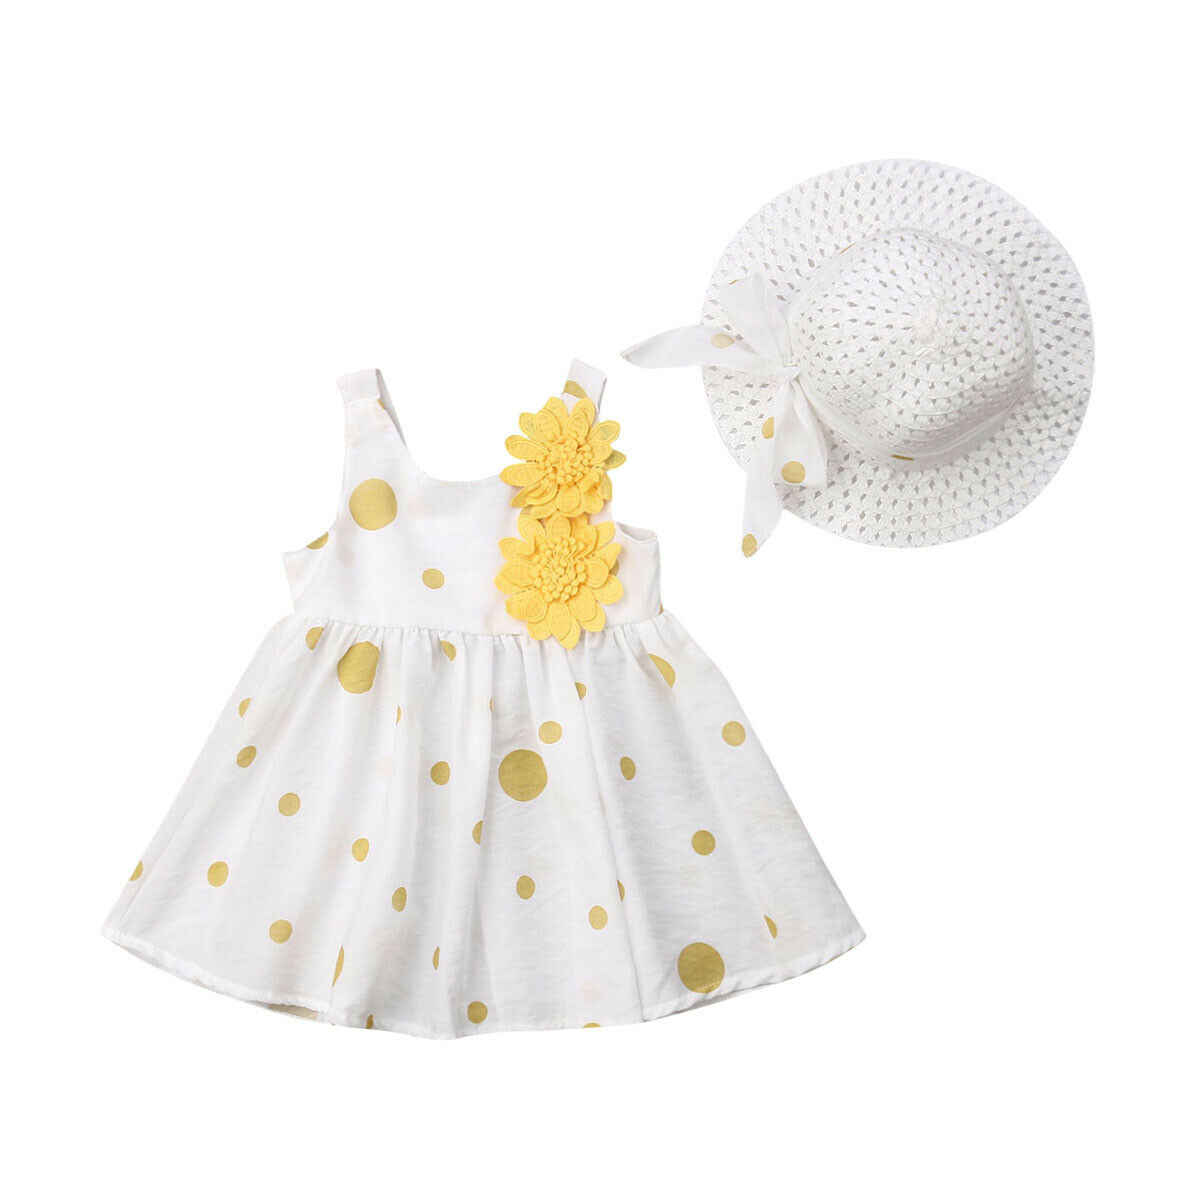 Cute Infant Kids Baby Girl Summer Dress Sleeveless Floral Dot Boho Dresses Hat 2PCS Princess Girls Party Clothes 6M-3Y